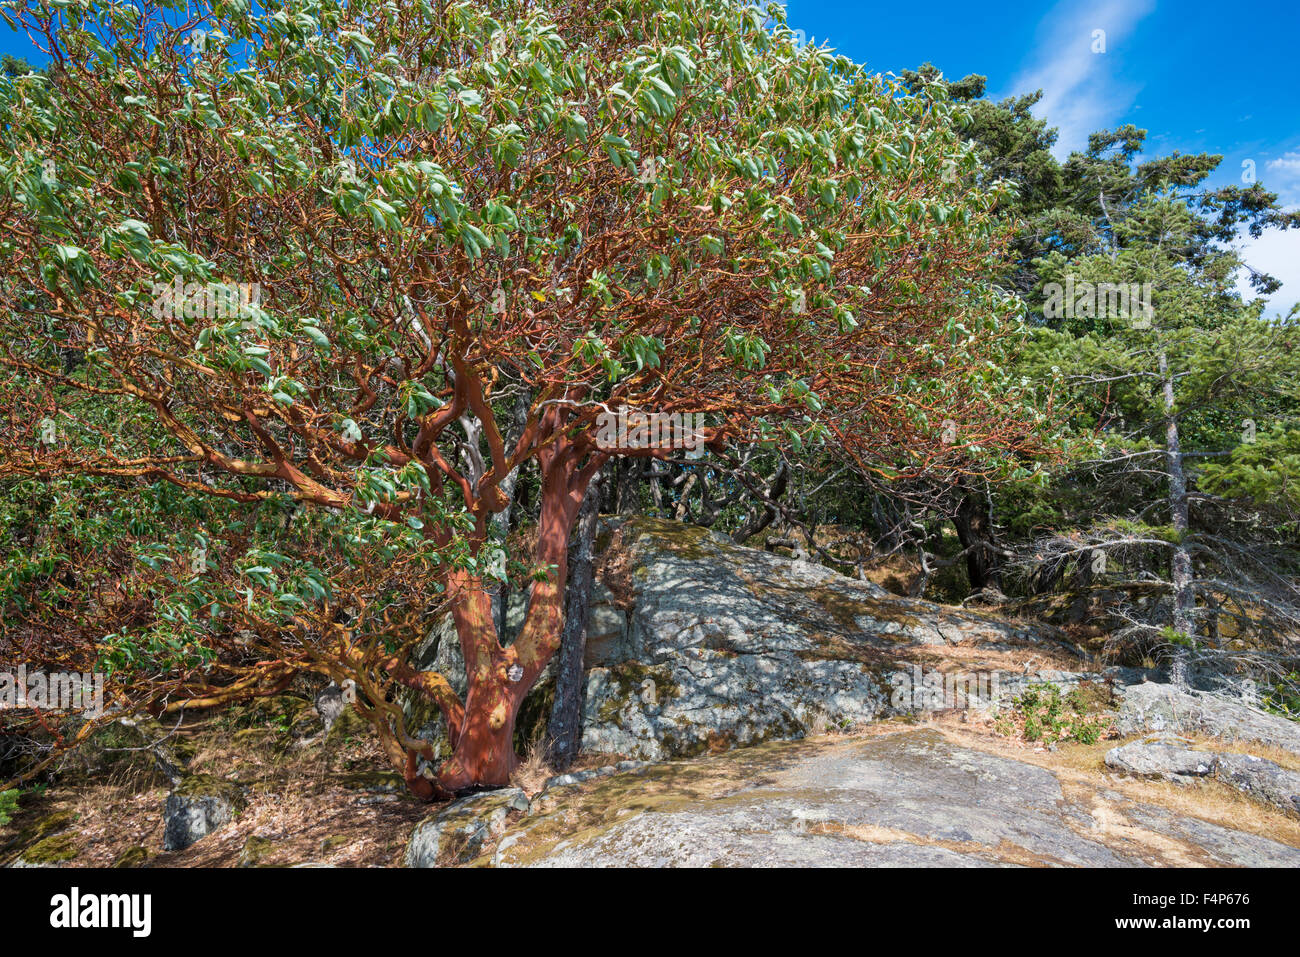 arbutus-tree-arbutus-menziesii-on-an-exp